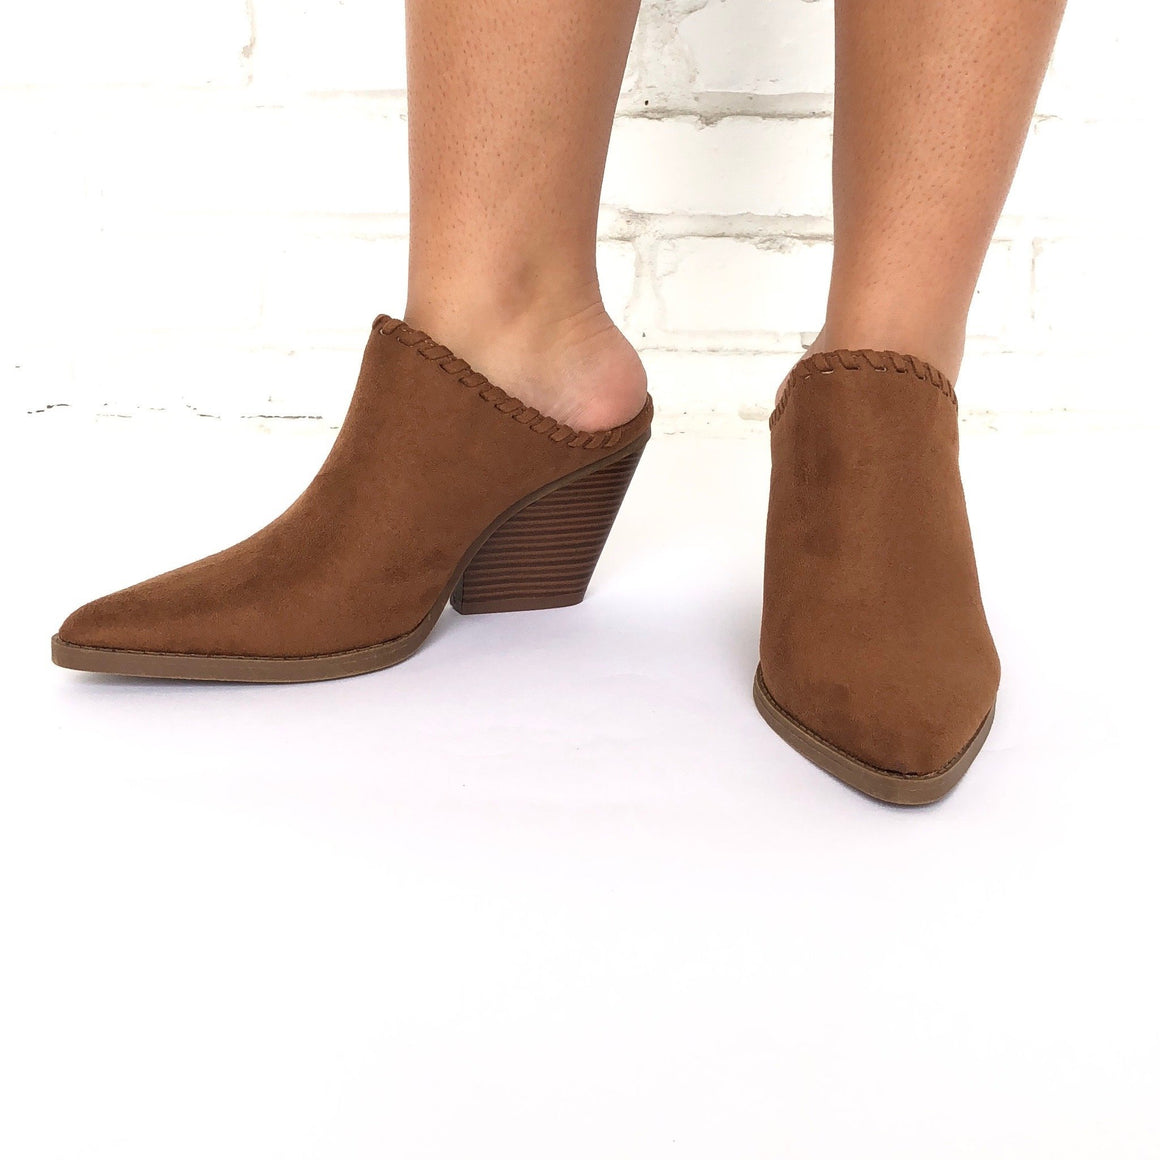 Get To The Point Slip On Heels In Camel - Dainty Hooligan